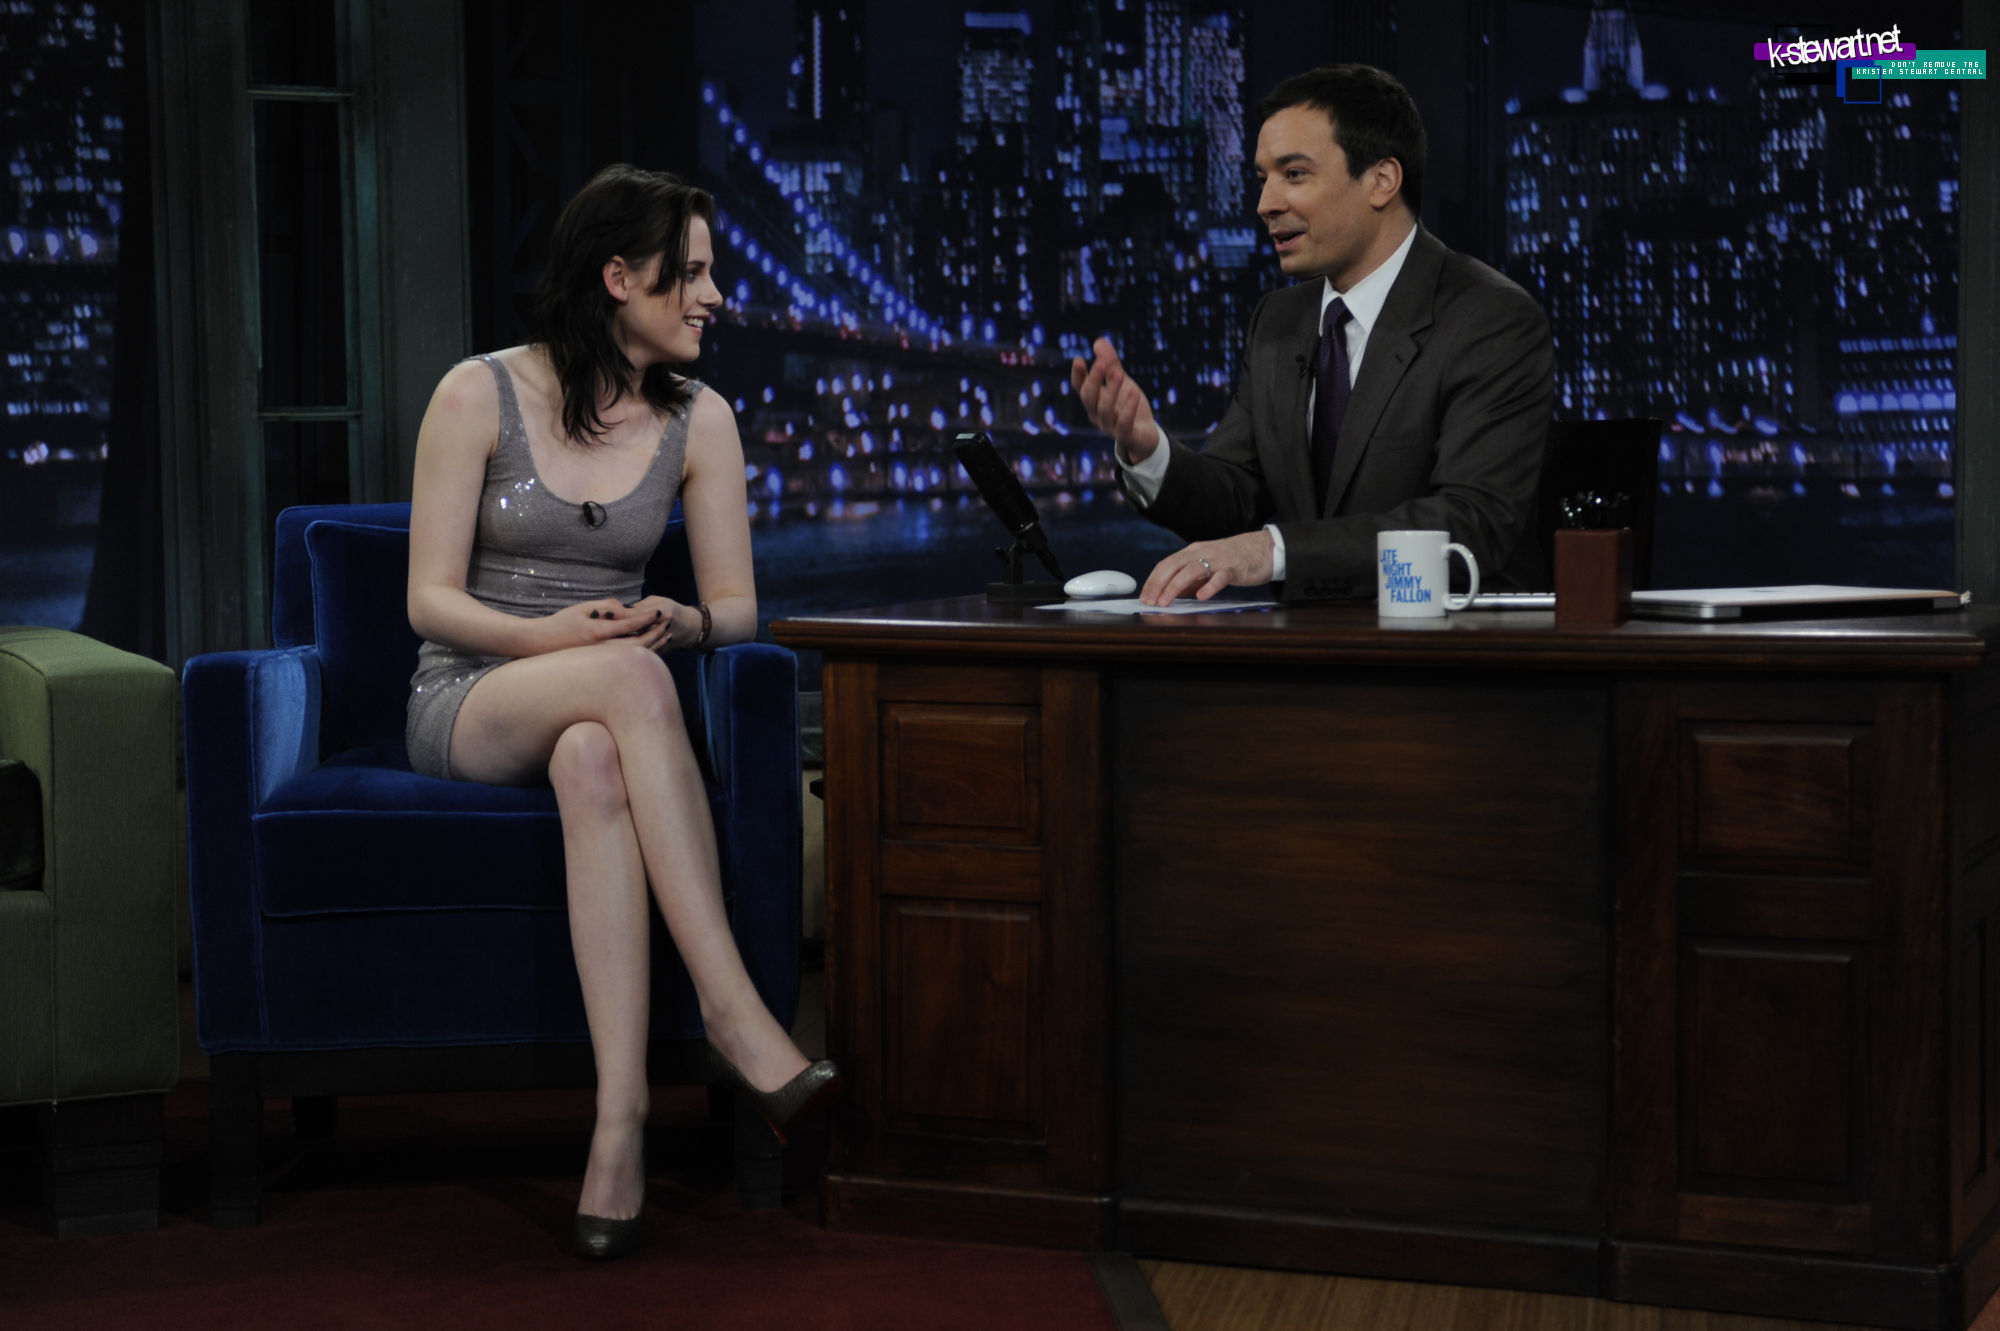 Kristen in Late Night with Jimmy Fallon 3-16-2010